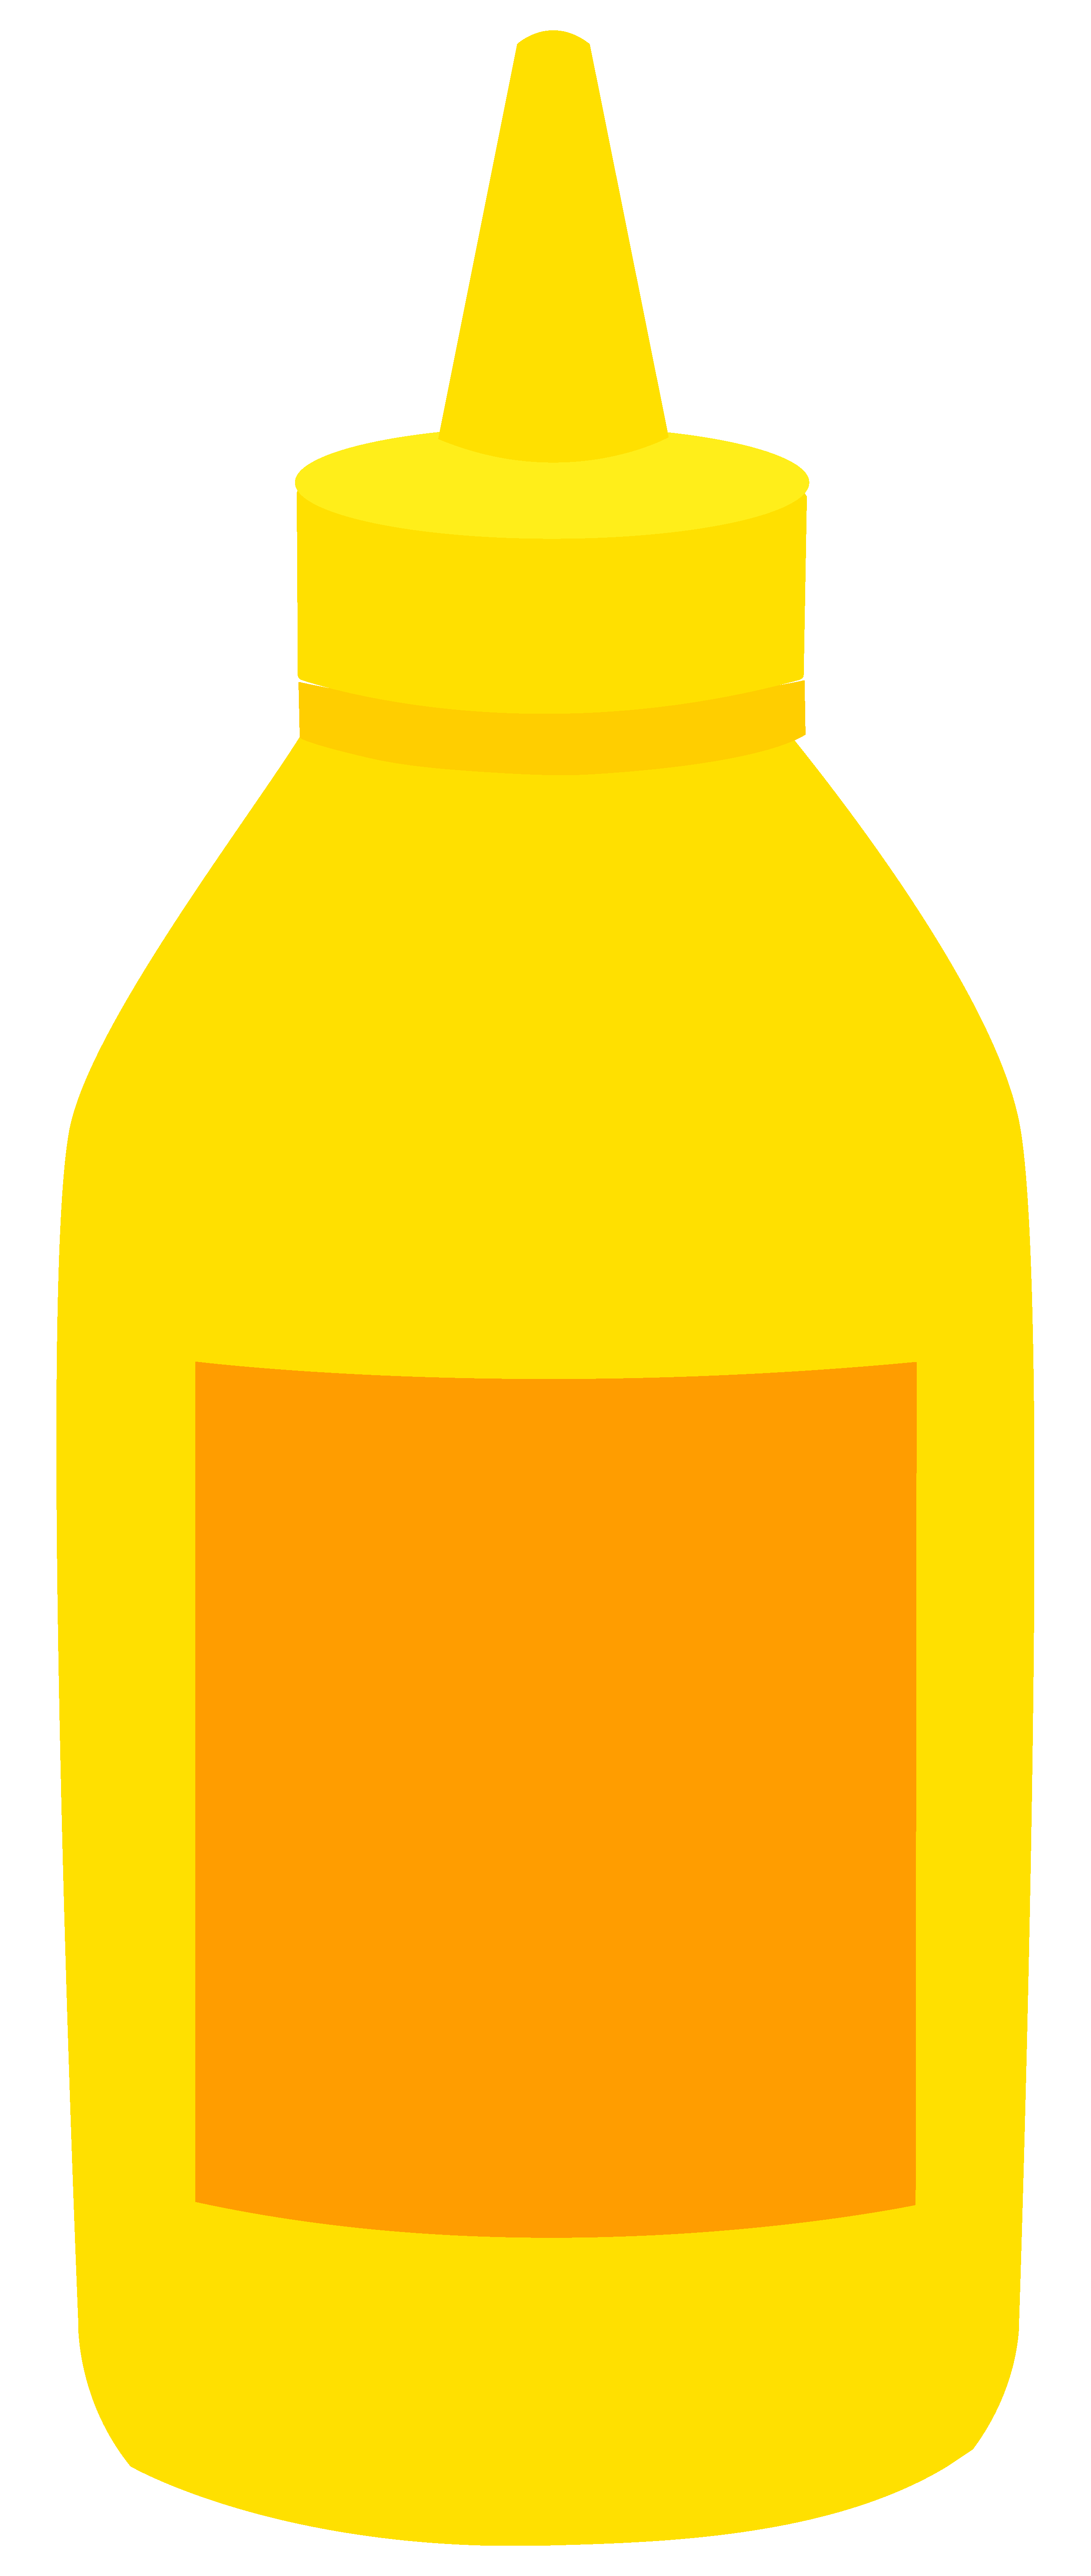 Bottle clipart mustard Rename If MUSTARD were the